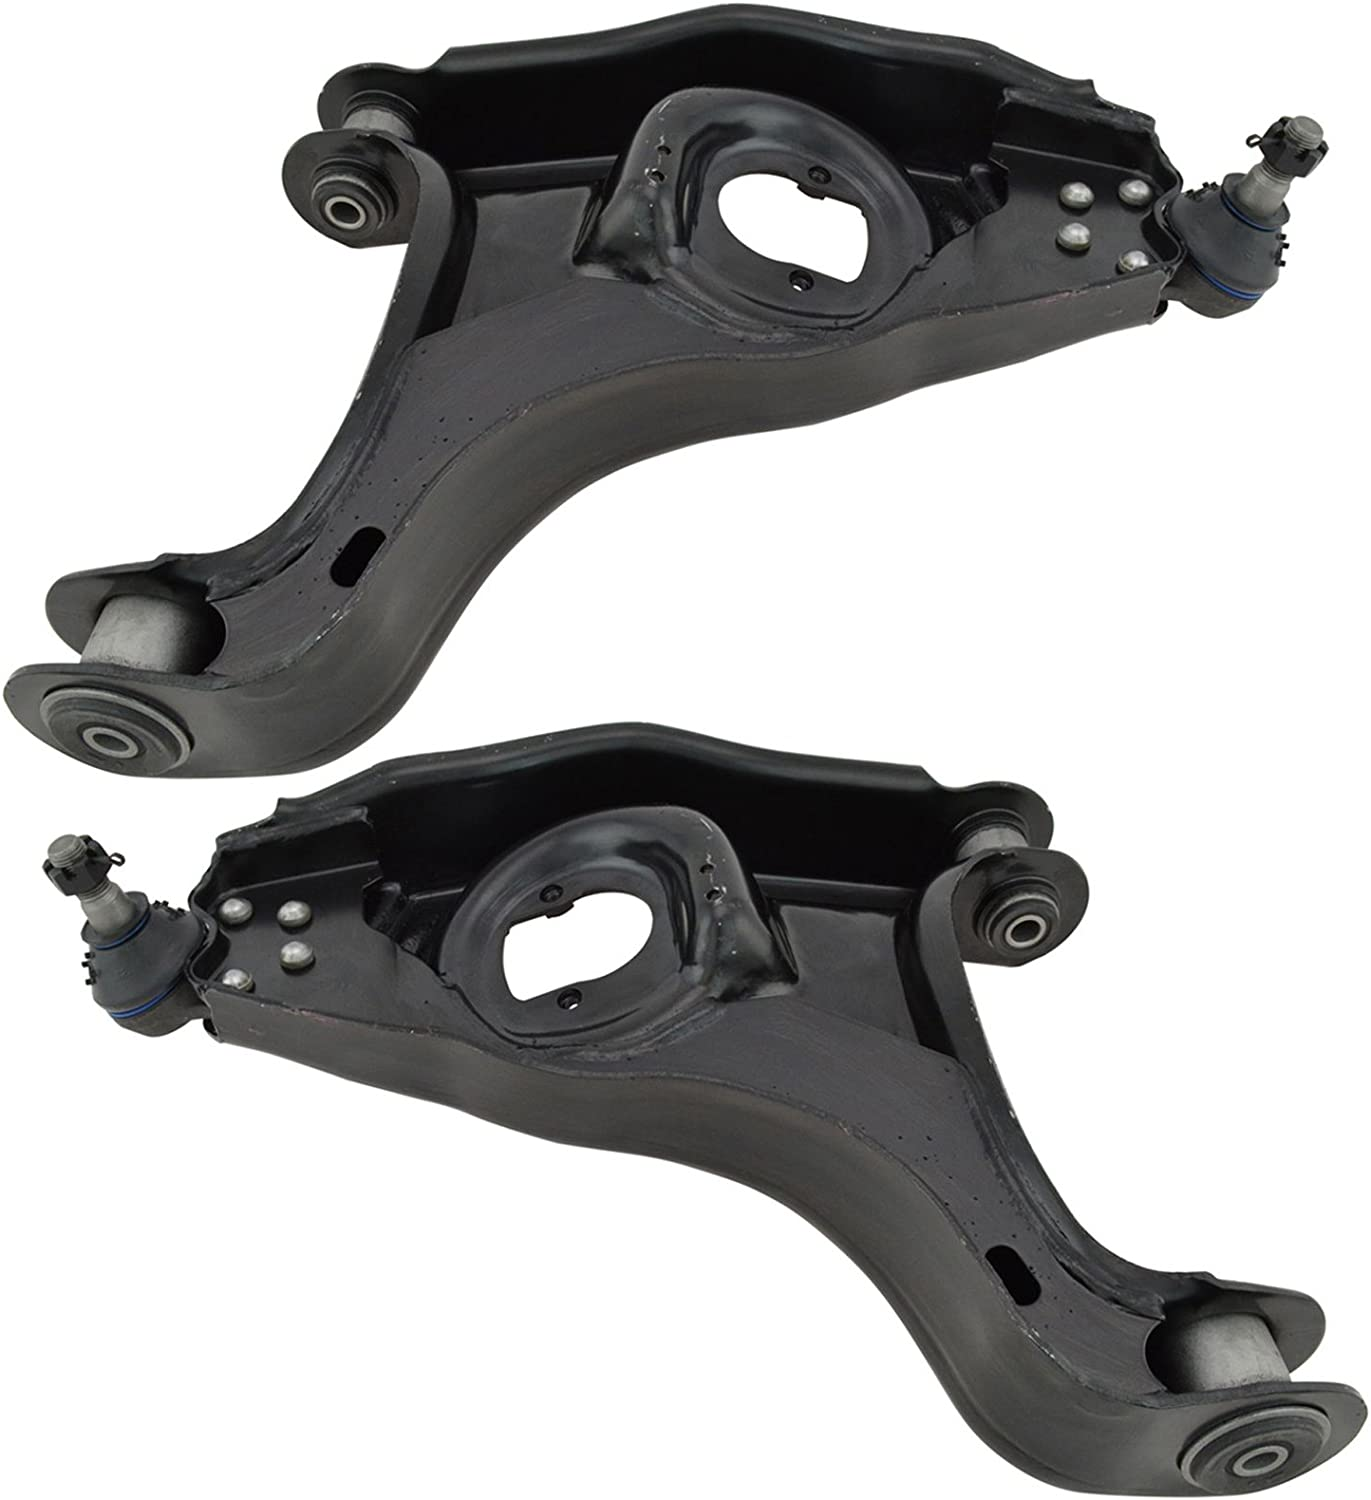 BuyAutoParts 93-80198K1 New Pair Front Lower Control Arm For Dodge Dakota /& Durango